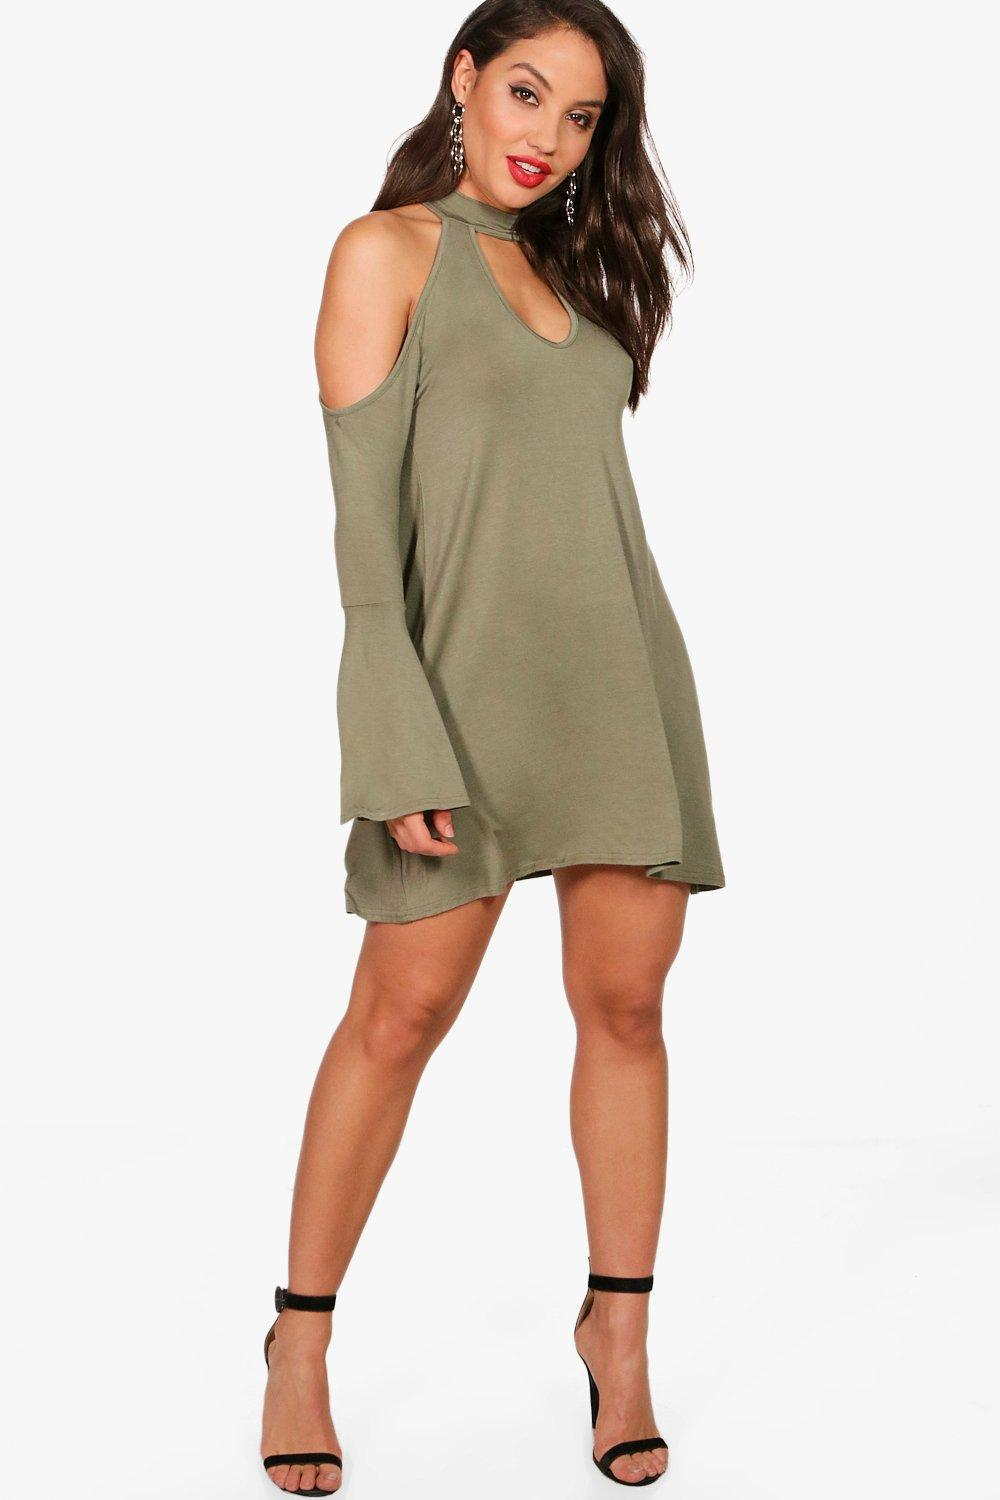 9684d830e3b0 Lyst - Boohoo Cold Shoulder Choker Swing Dress in Green